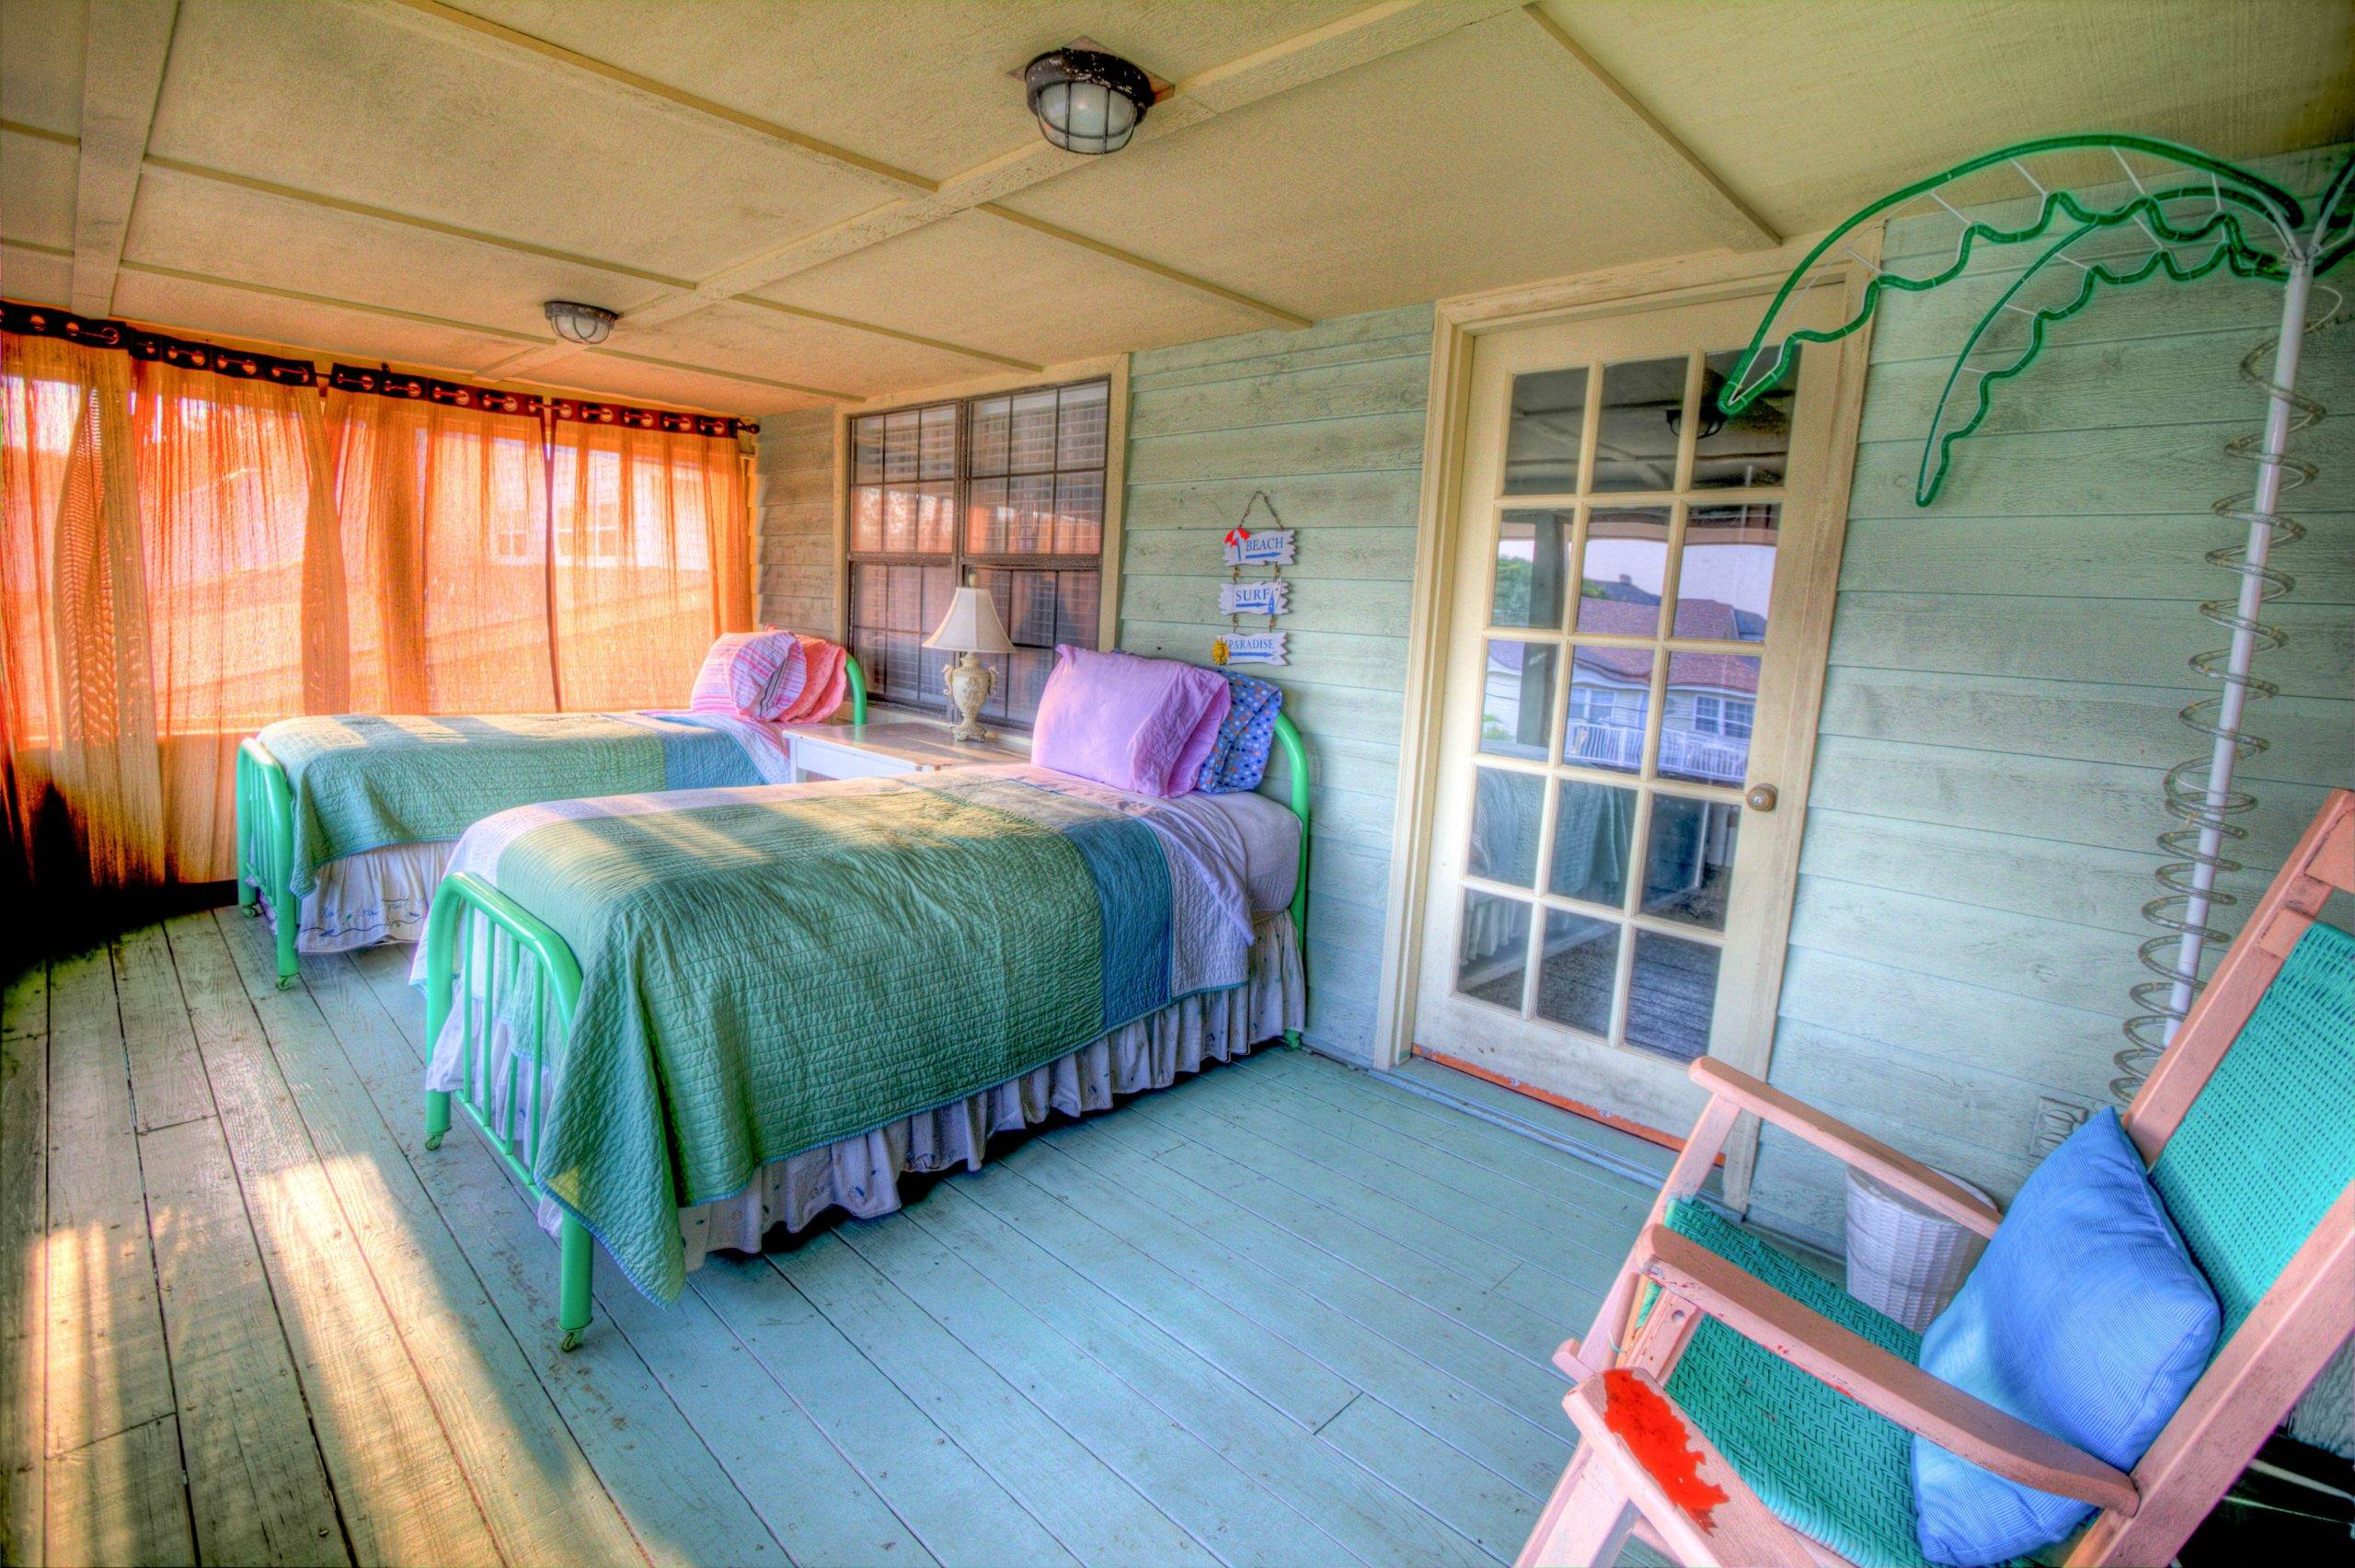 Two beds in spacious bedroom with orange sheer curtain and palm tree stand at the side